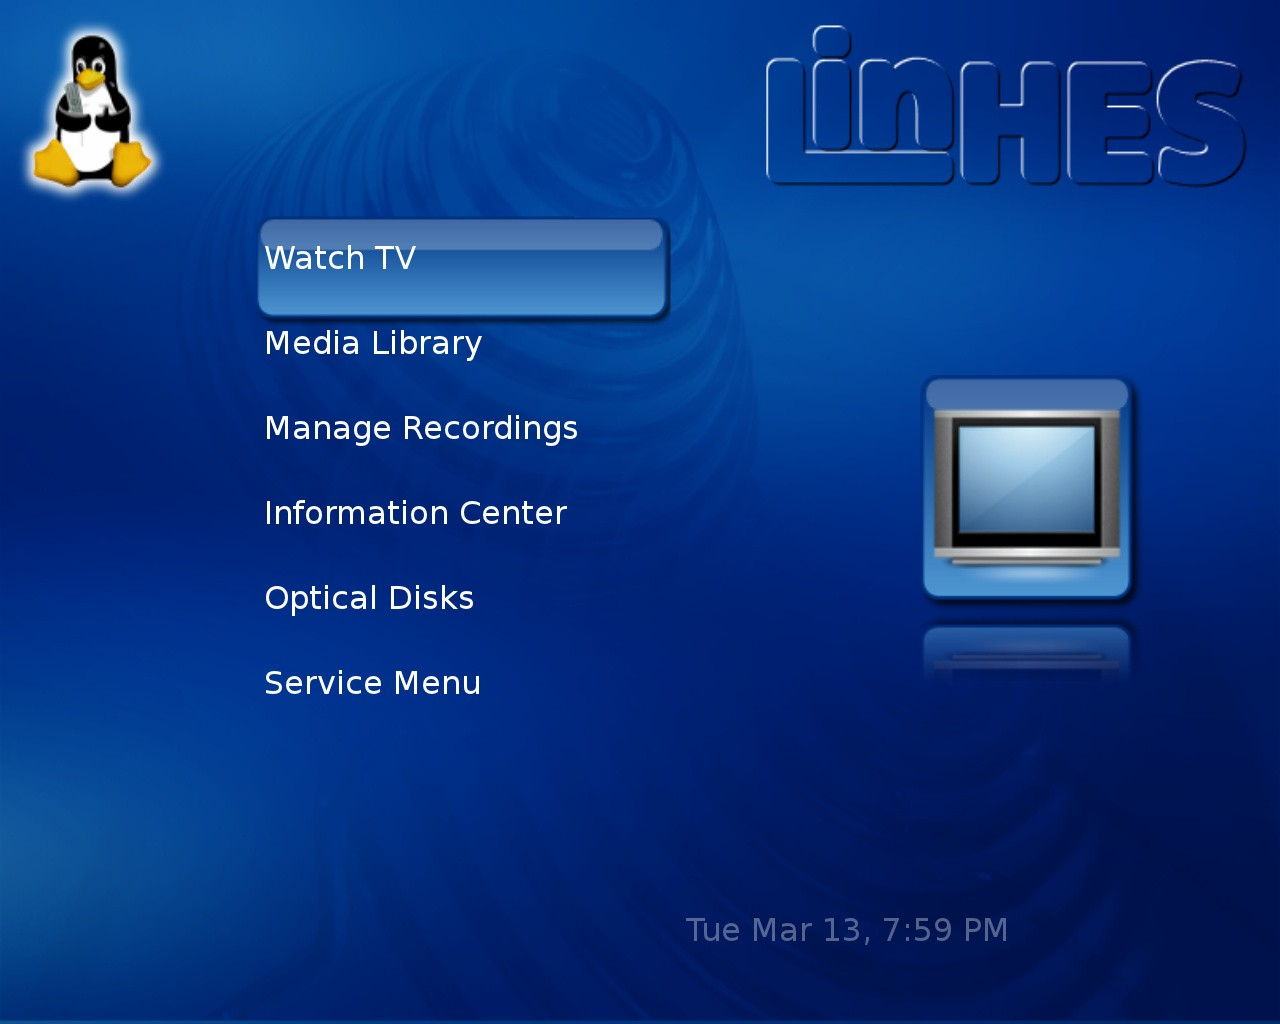 Arch Linux Based Linhes 8 4 Os Launches With Kodi 16 1 Mythtv 0 28 And Openpht